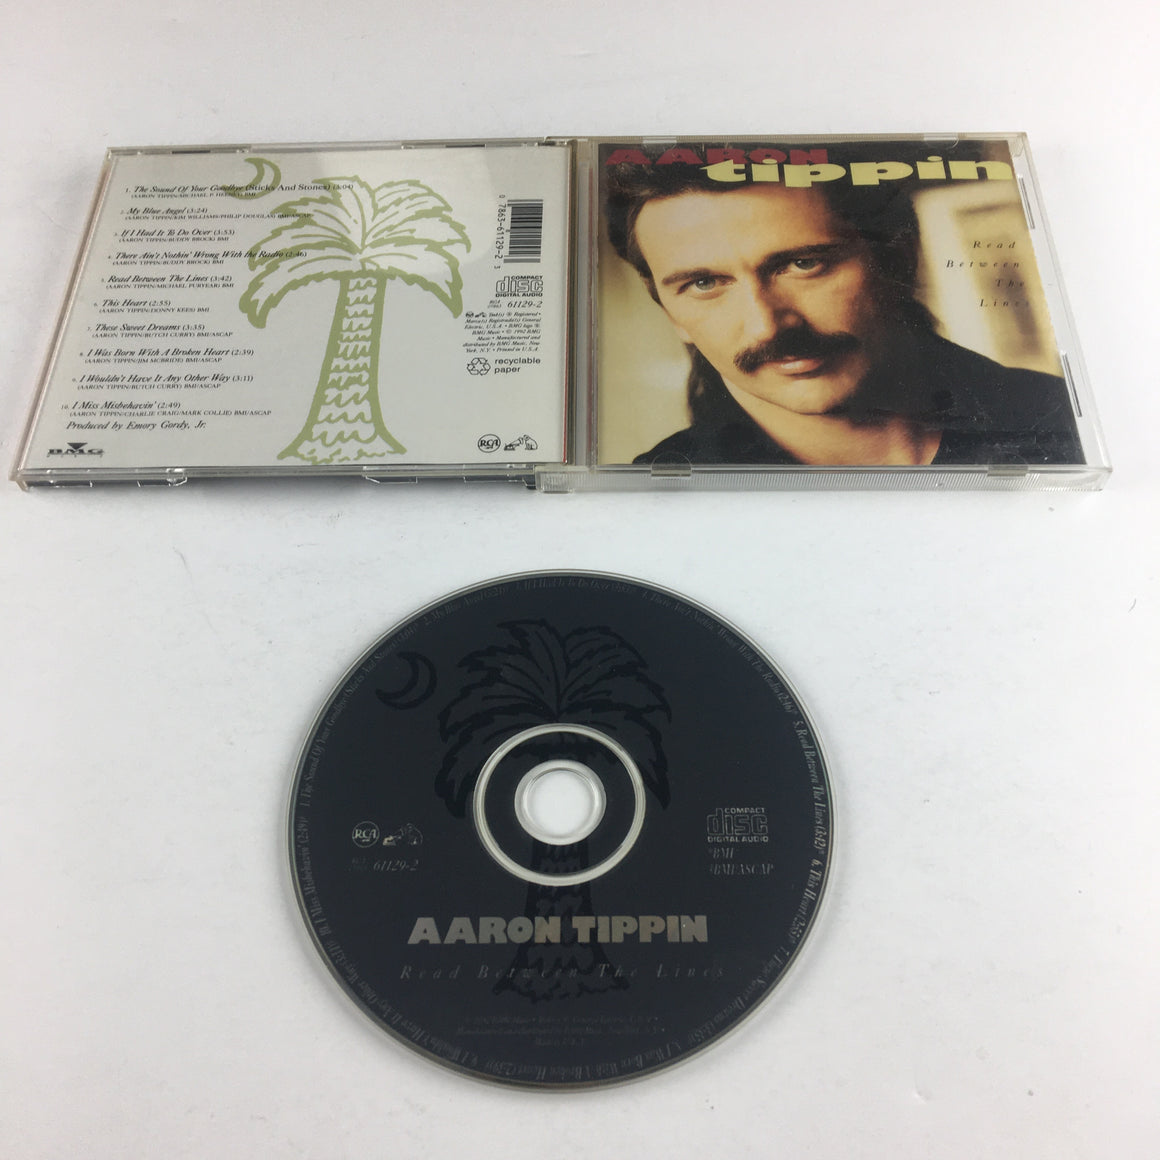 Aaron Tippin Read Between The Lines Used CD VG RCA 07863 61129-2